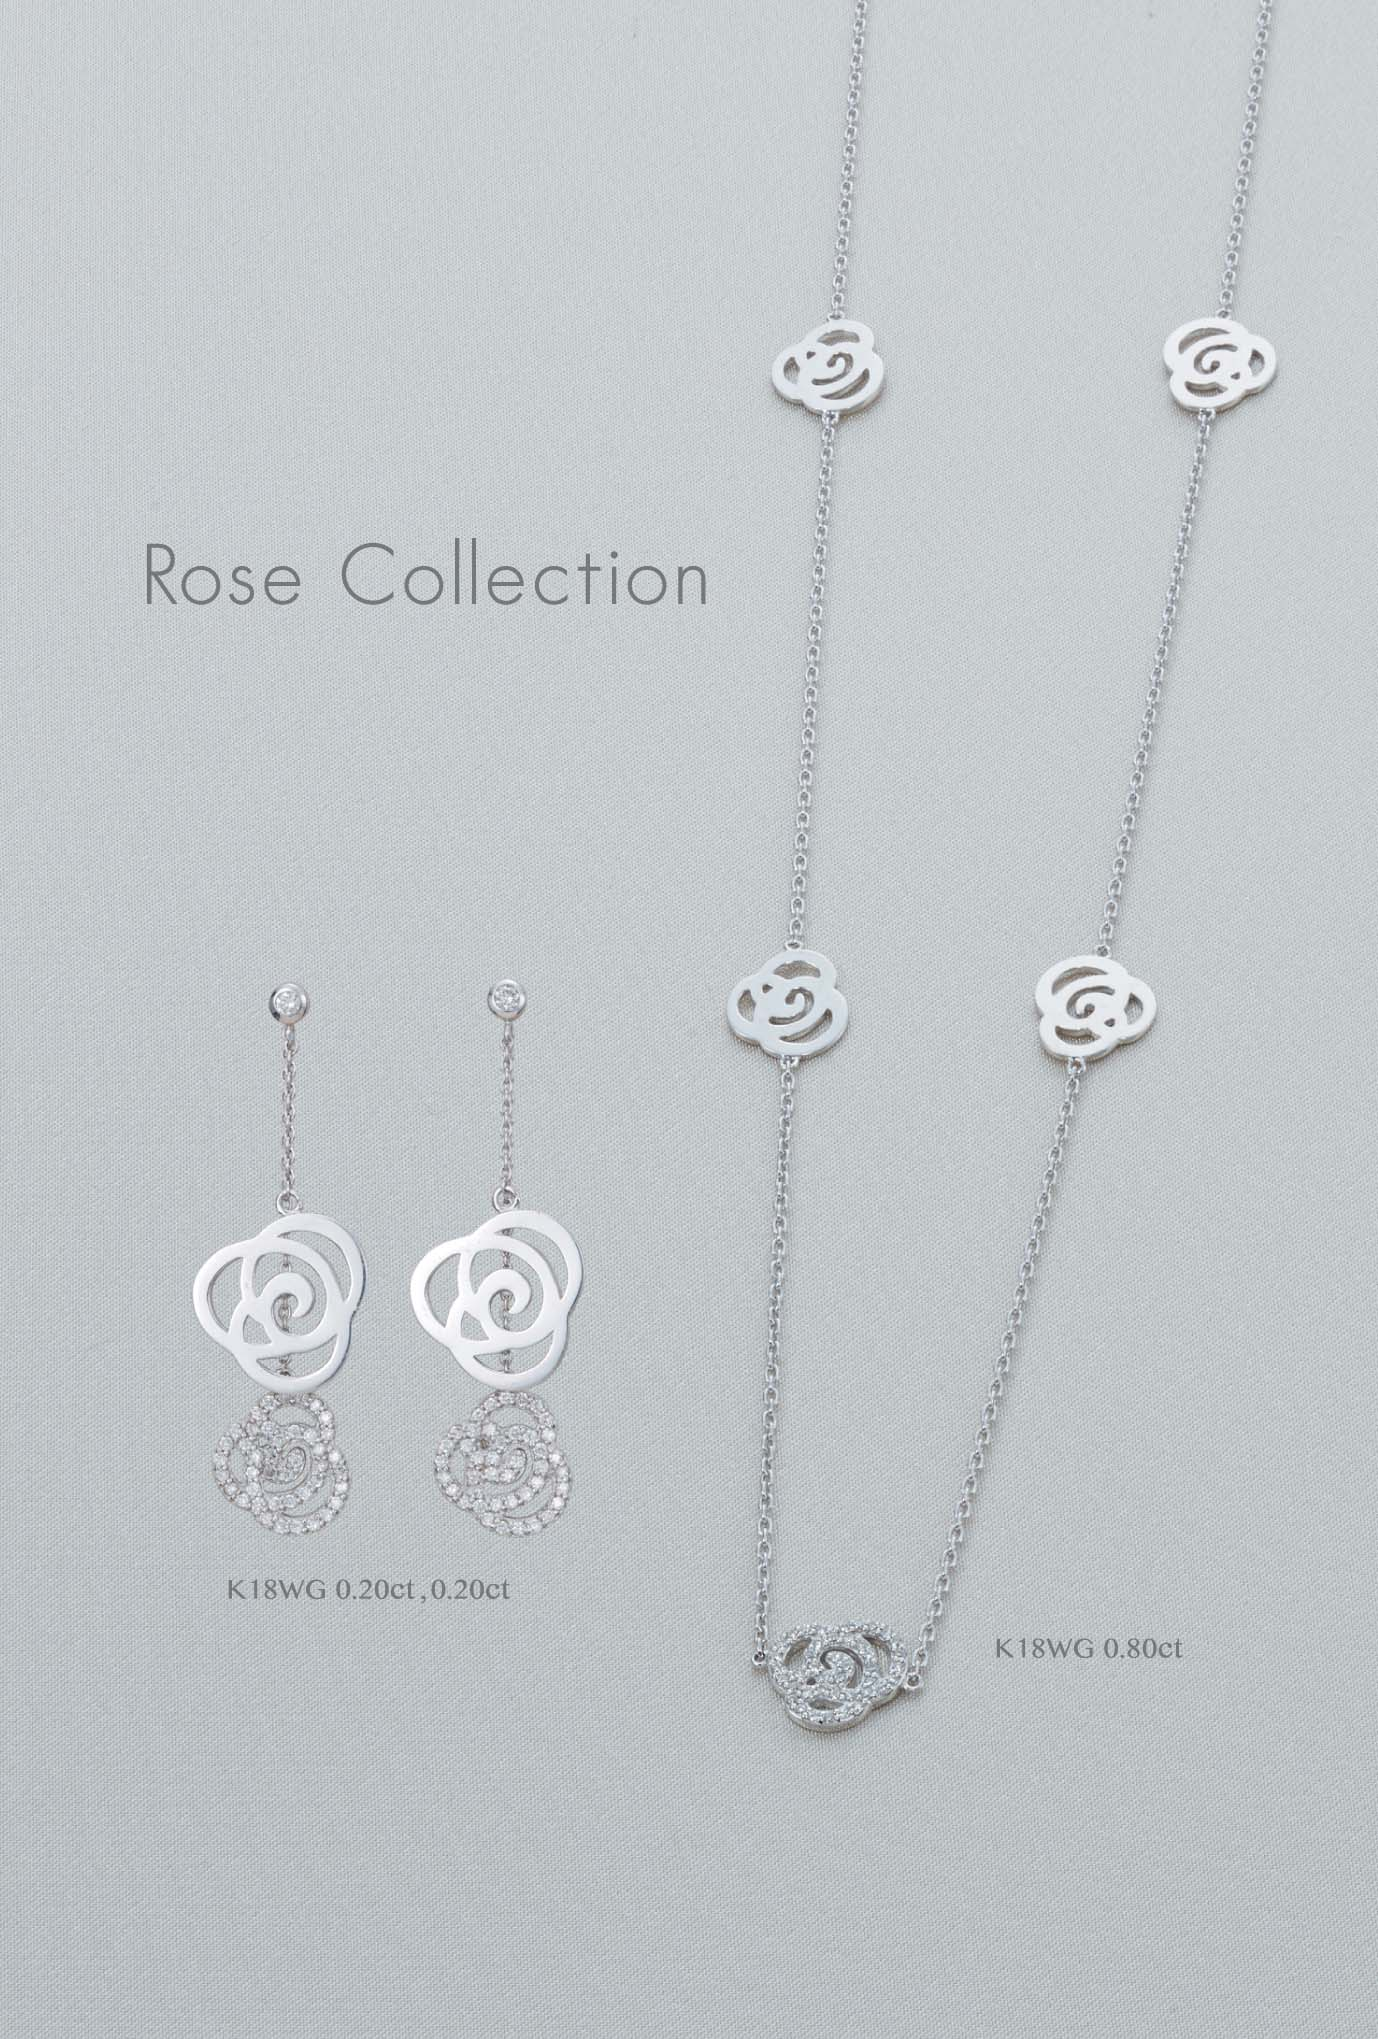 rose-collection